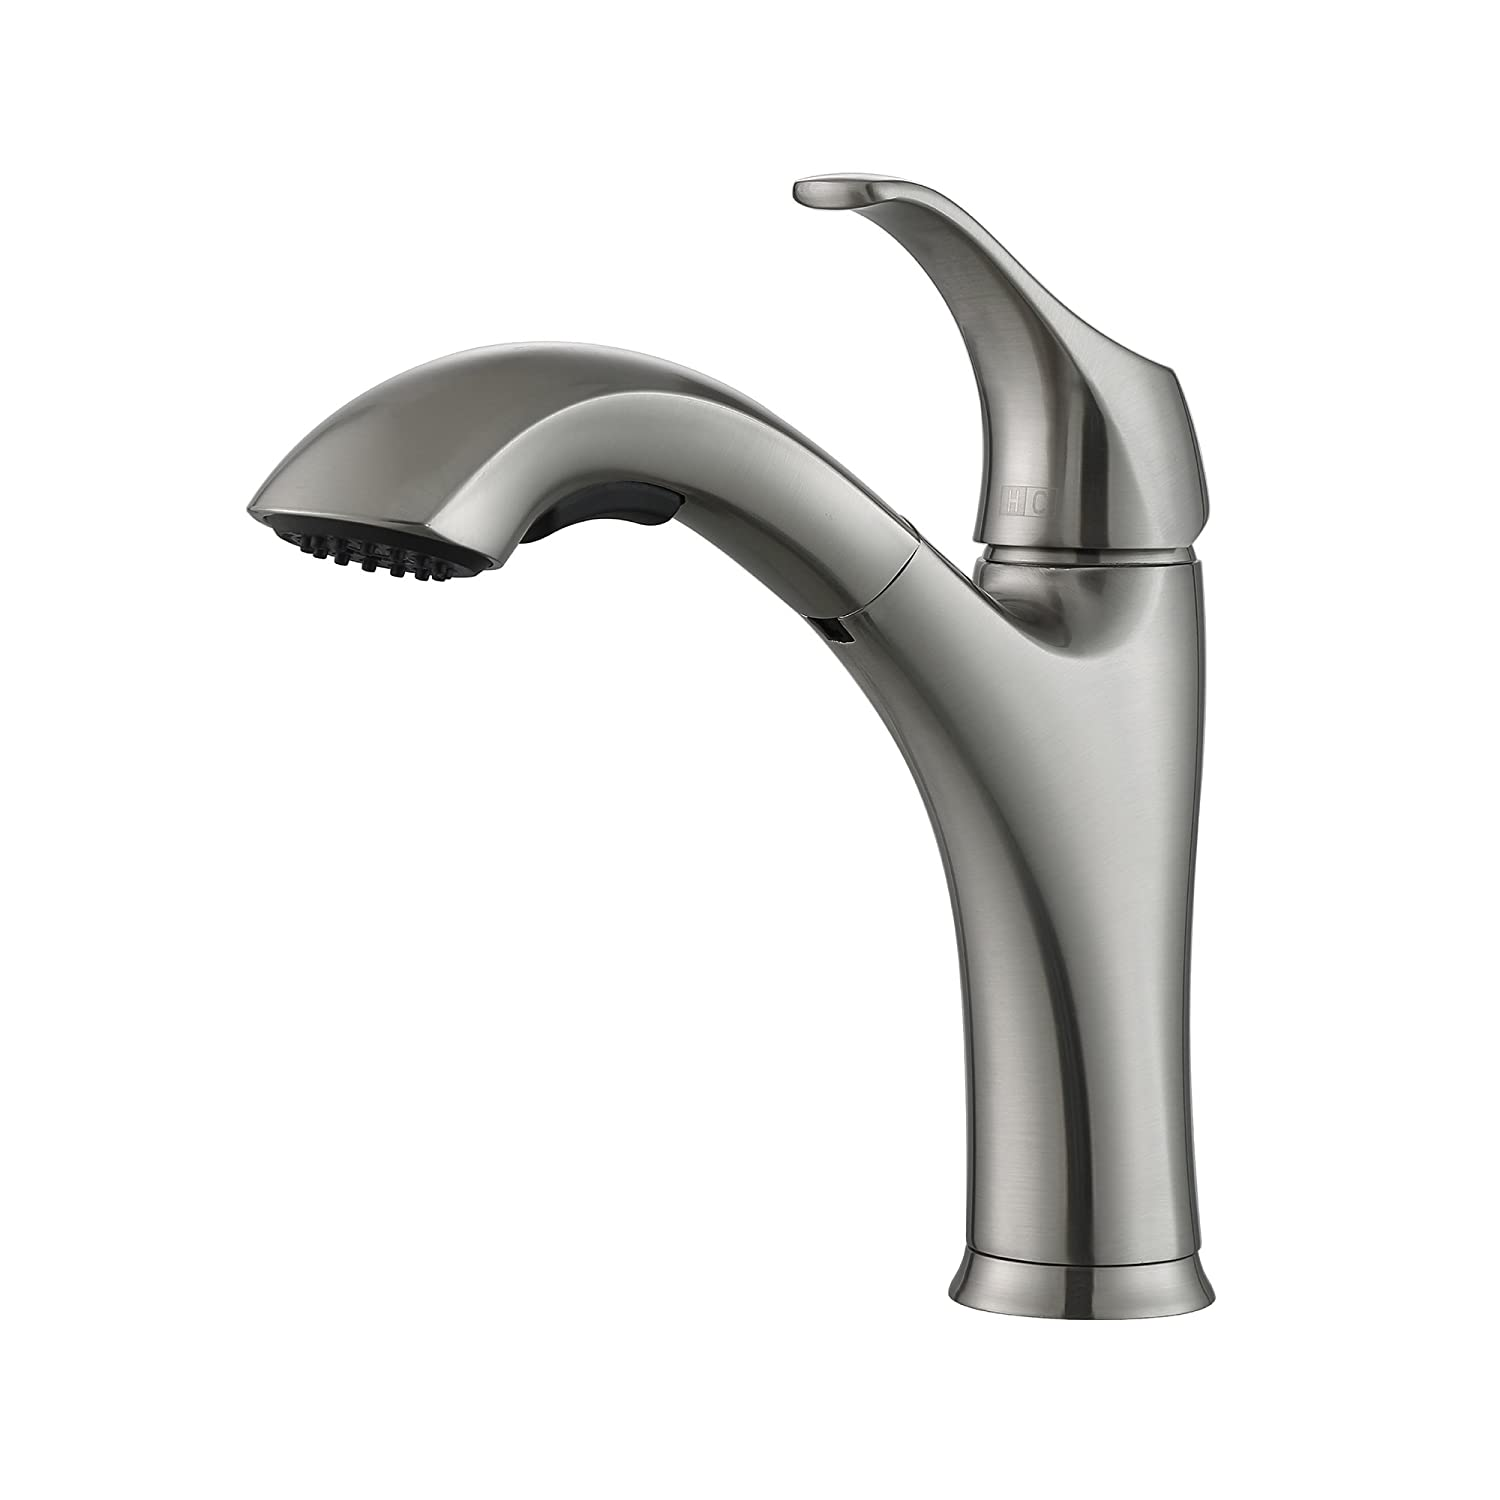 Awesome Kraus KPF 2250 Single Lever Pull Out Kitchen Faucet, Stainless Steel      Amazon.com